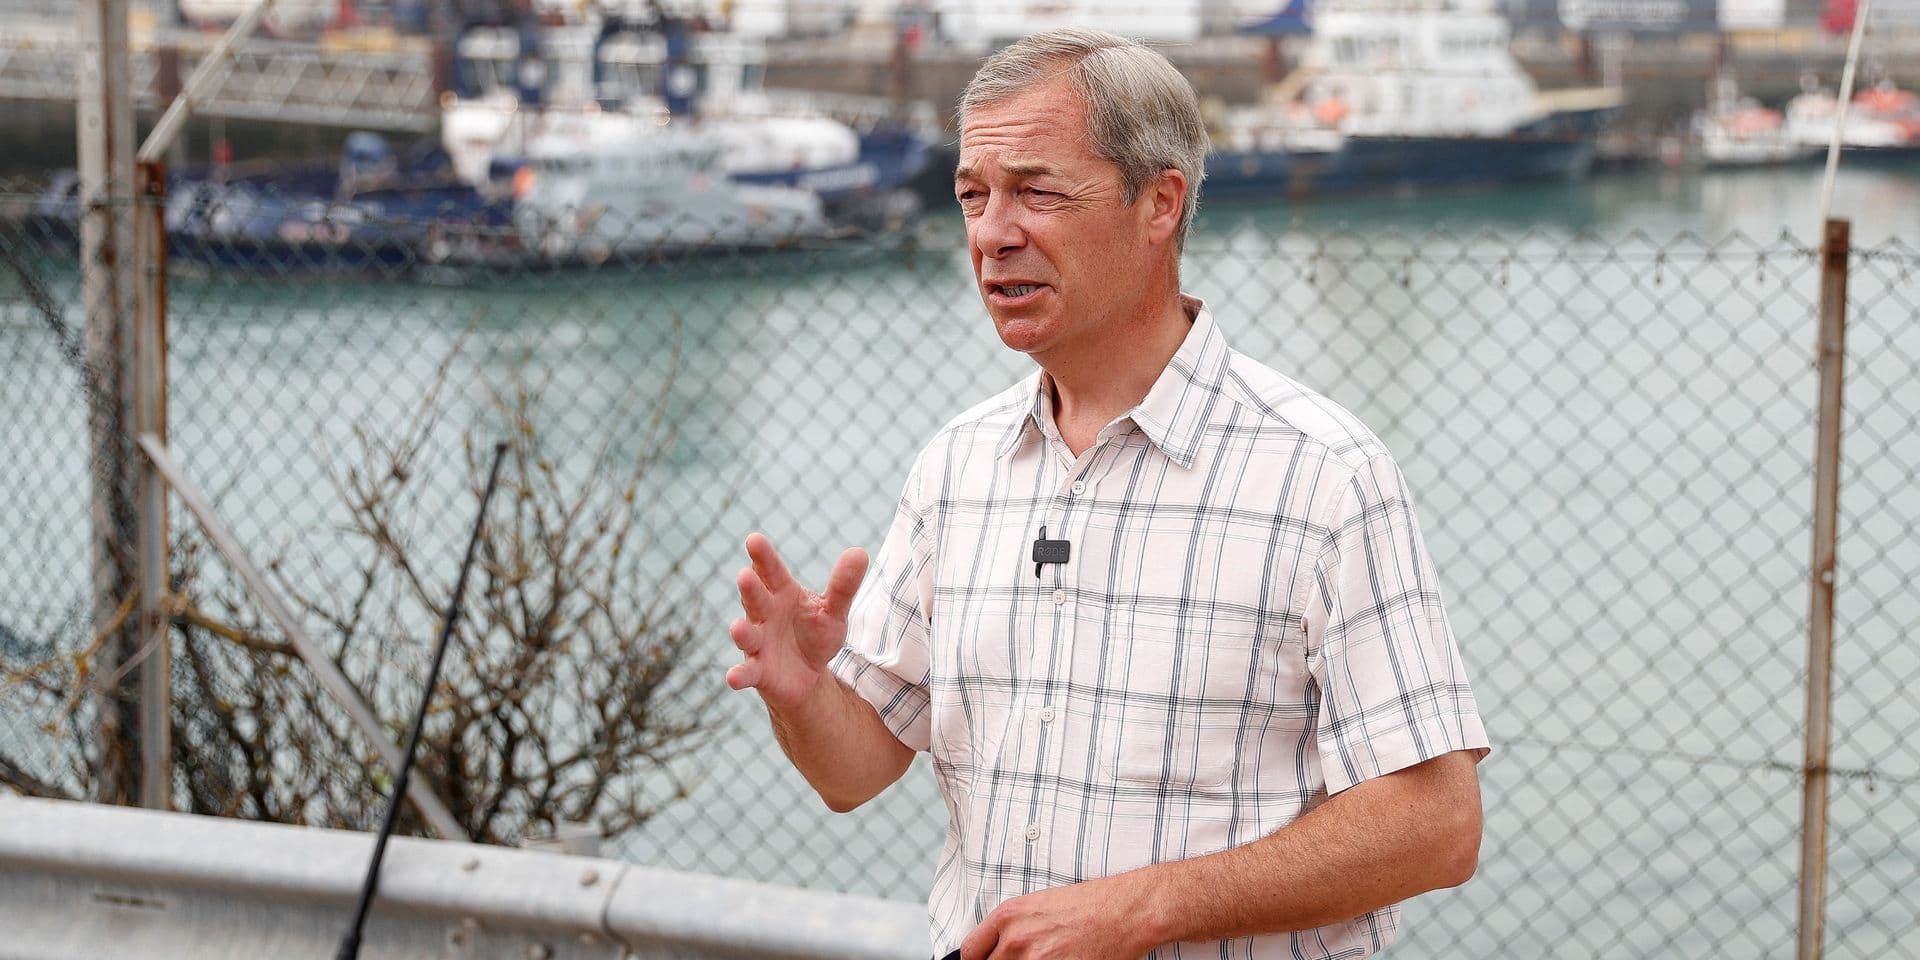 Nigel Farage, la figure de proue du Brexit, annonce son retrait de la politique